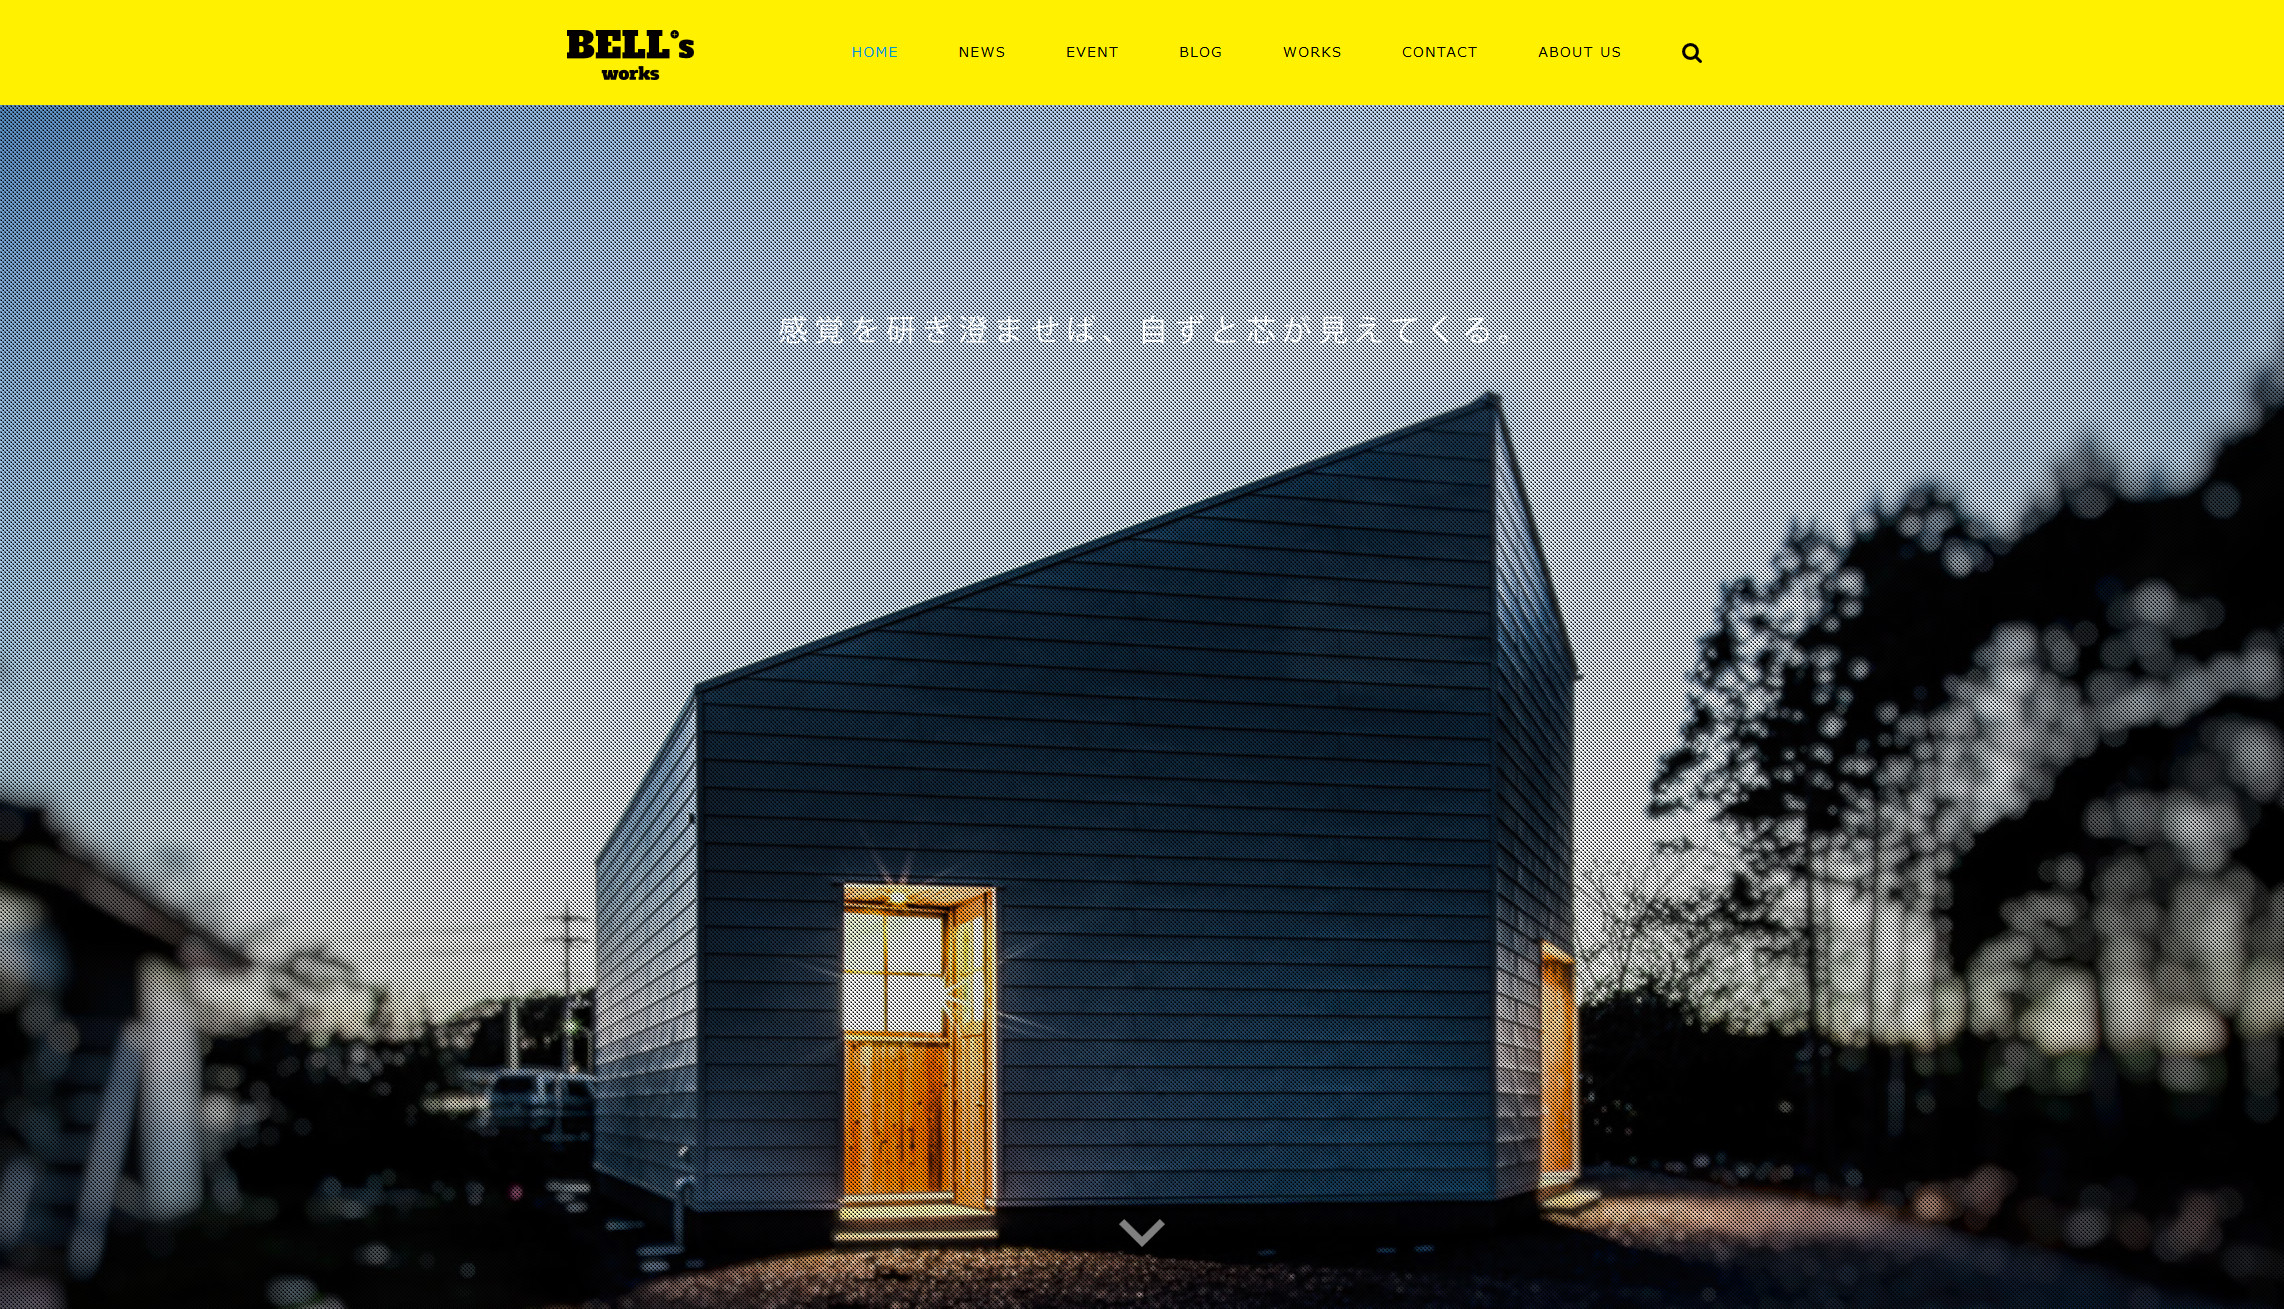 BELL's works様ホームページ